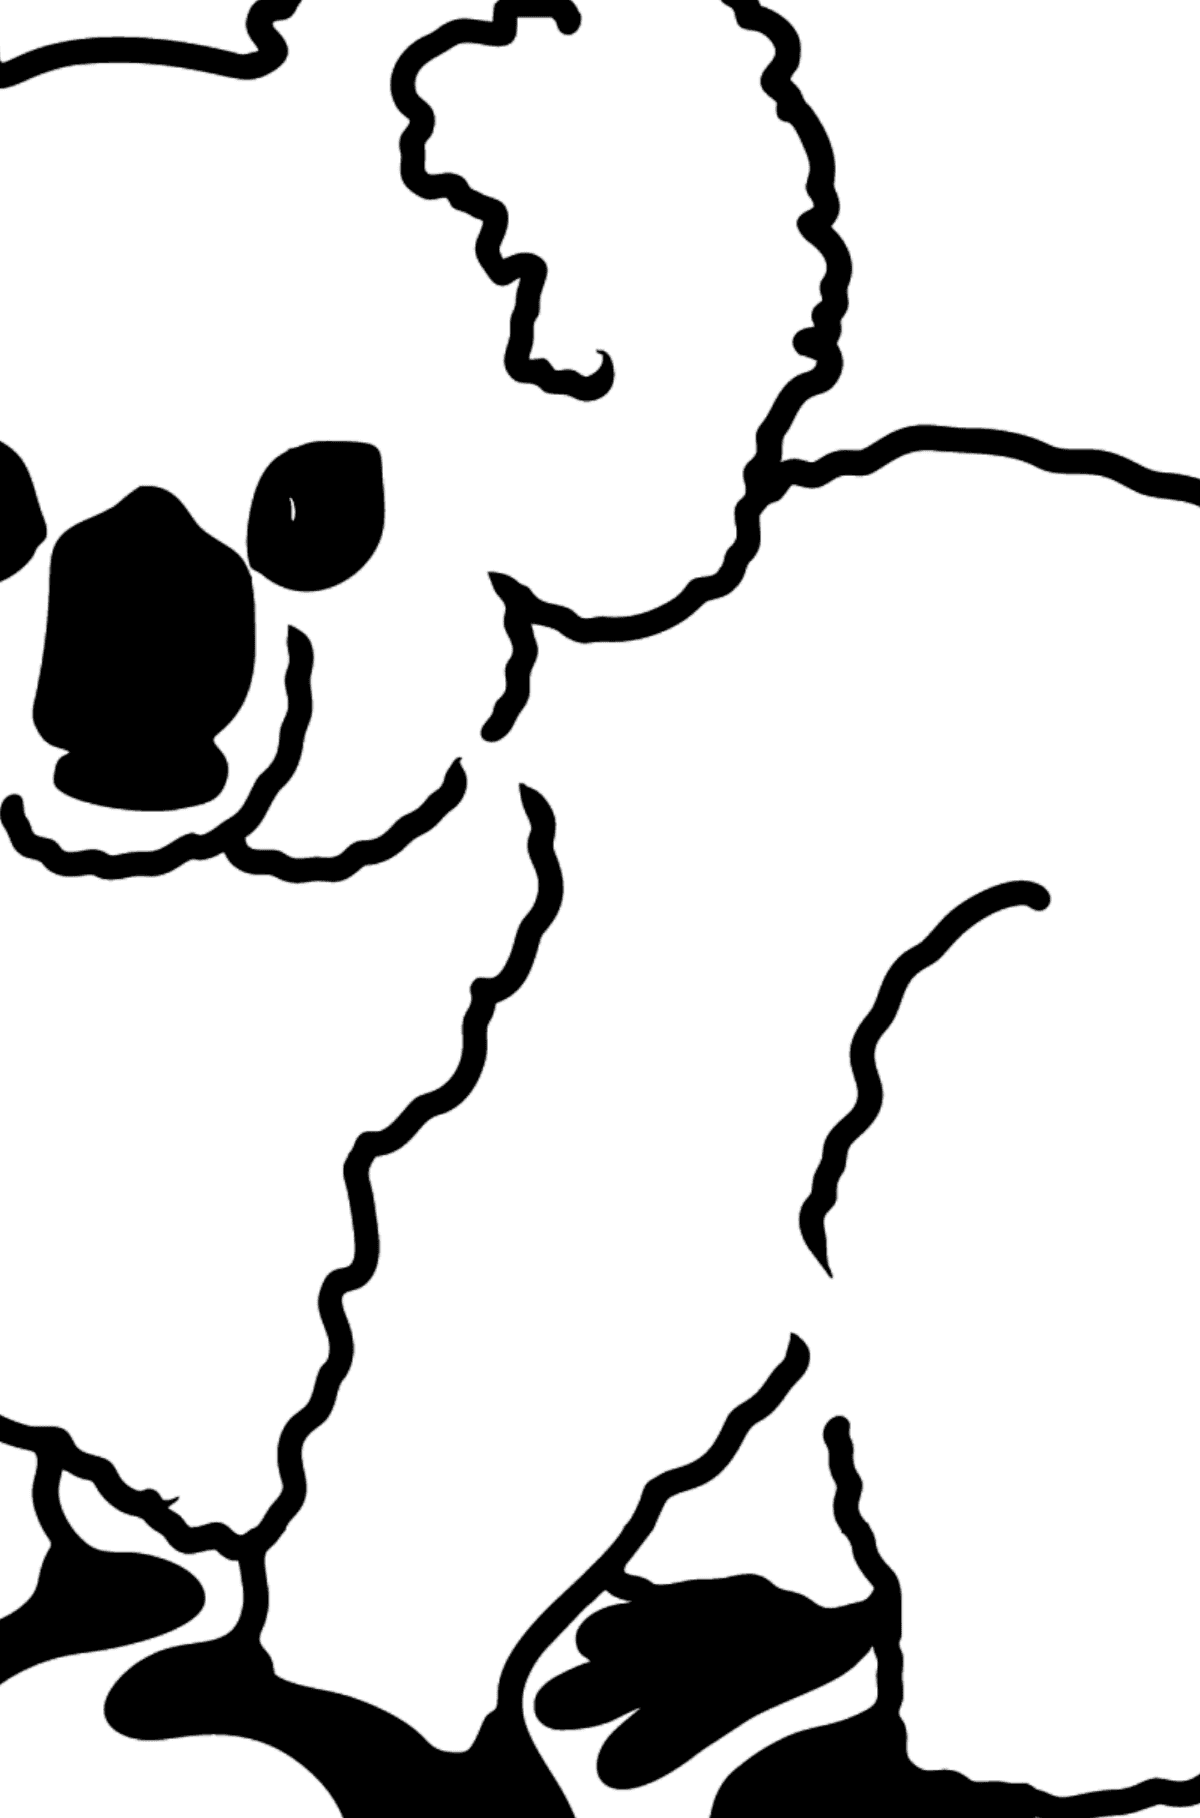 Koala coloring page - Math Coloring - Multiplication for Kids